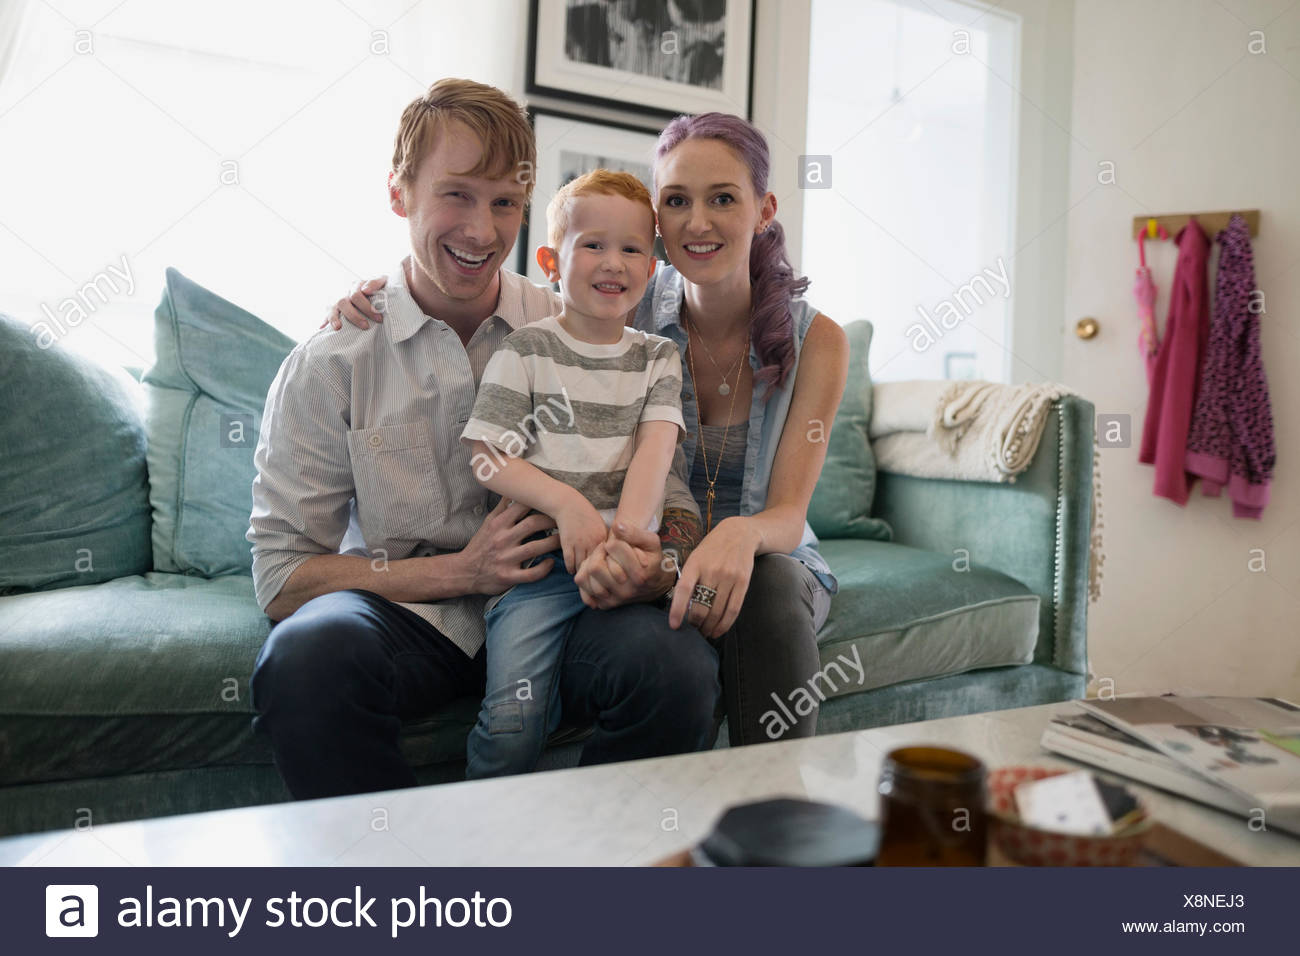 Portrait smiling young family on sofa in living room Photo Stock